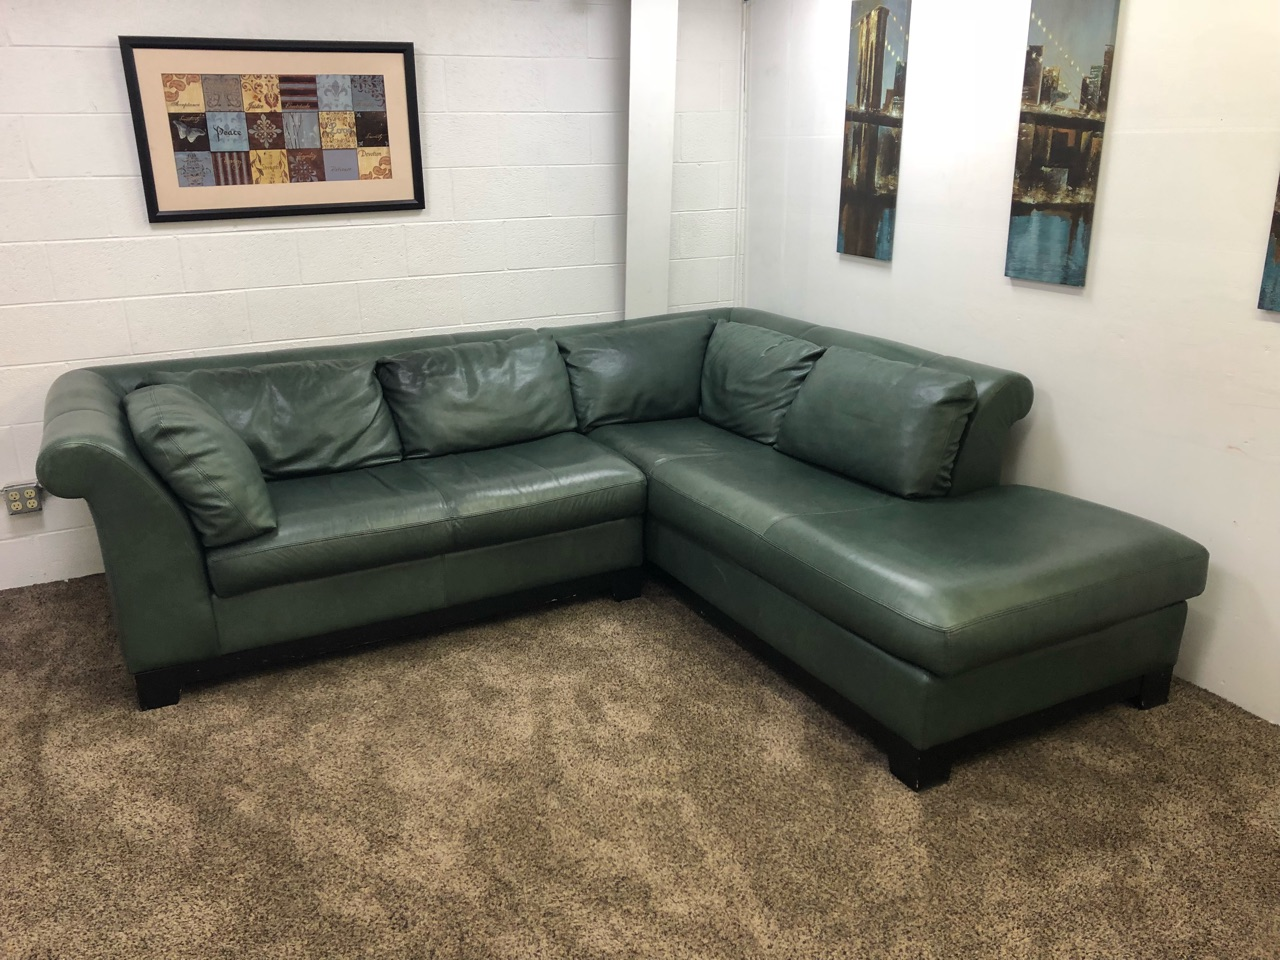 Forest Green Leather Sectional Sofa Set W Chaise Lounge